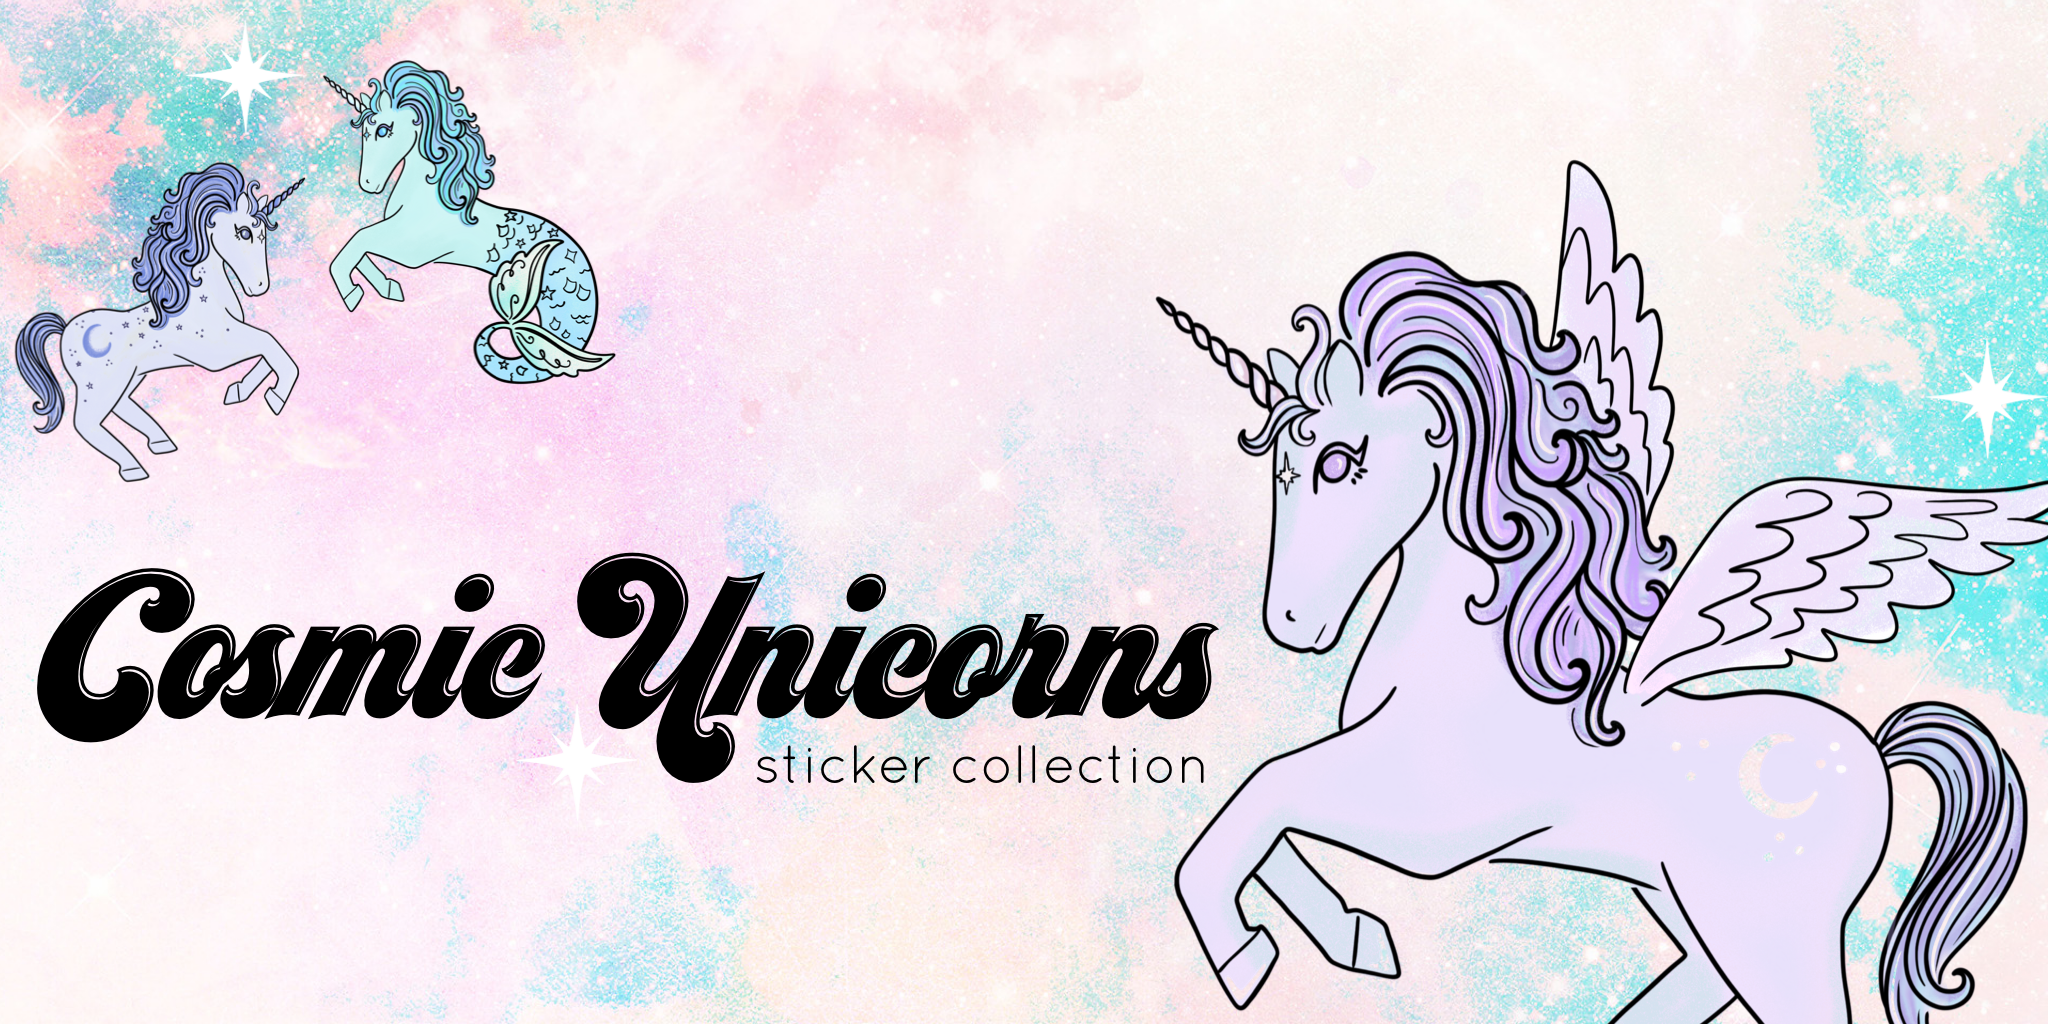 laceandwhimsy-cosmic-unicorns-zodiac-astrology-whimsybox-february-theme-laceandwhimsystudio.png